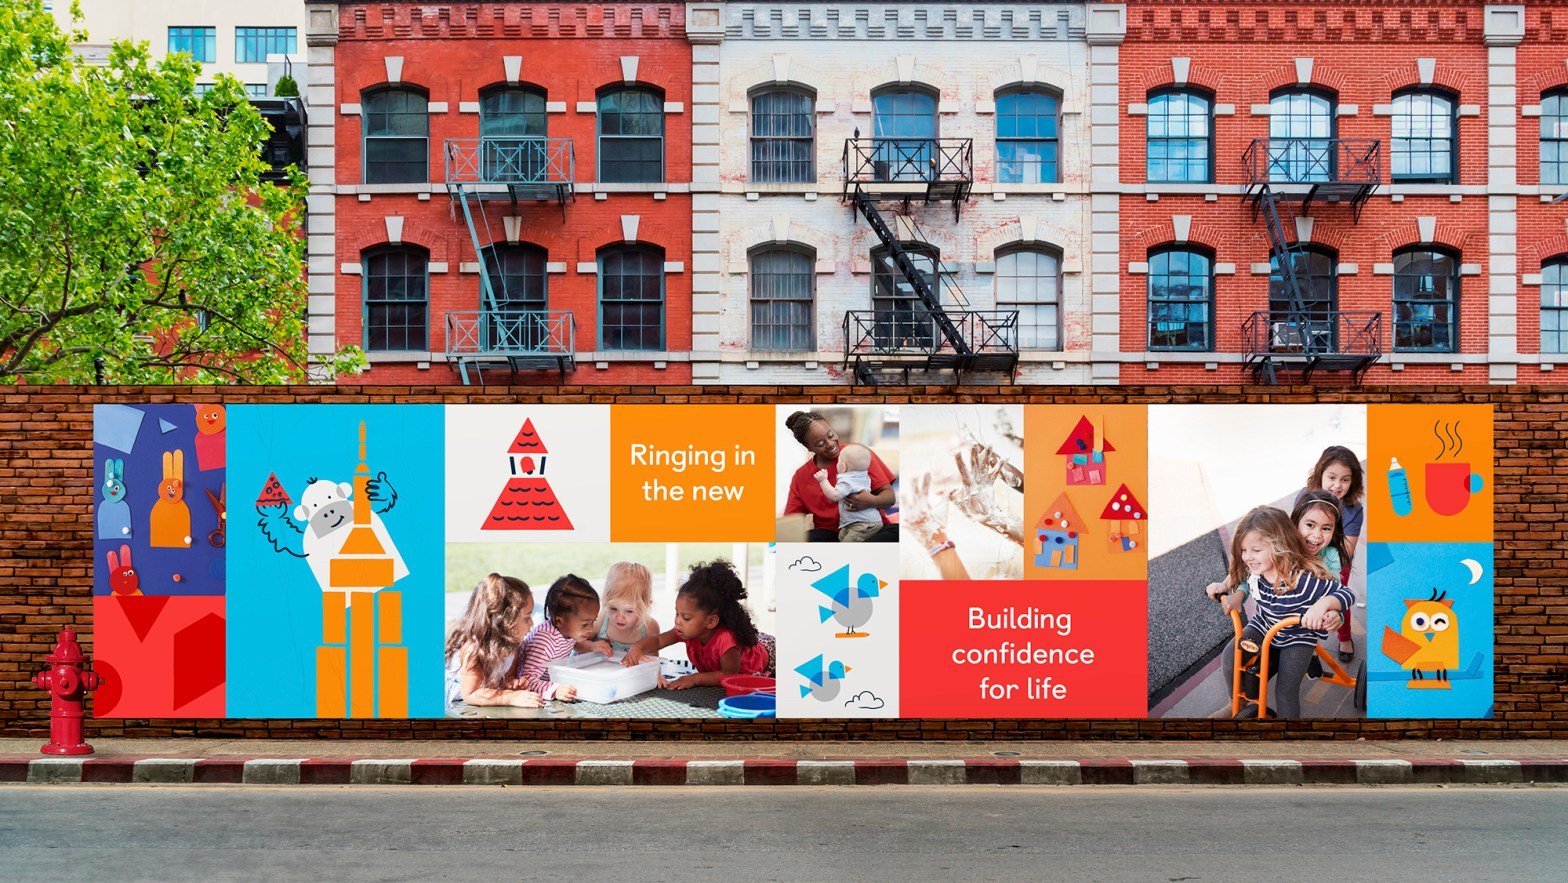 Thumbnail for Design Bridge's KinderCare Brand Identity Builds Confidence For Life